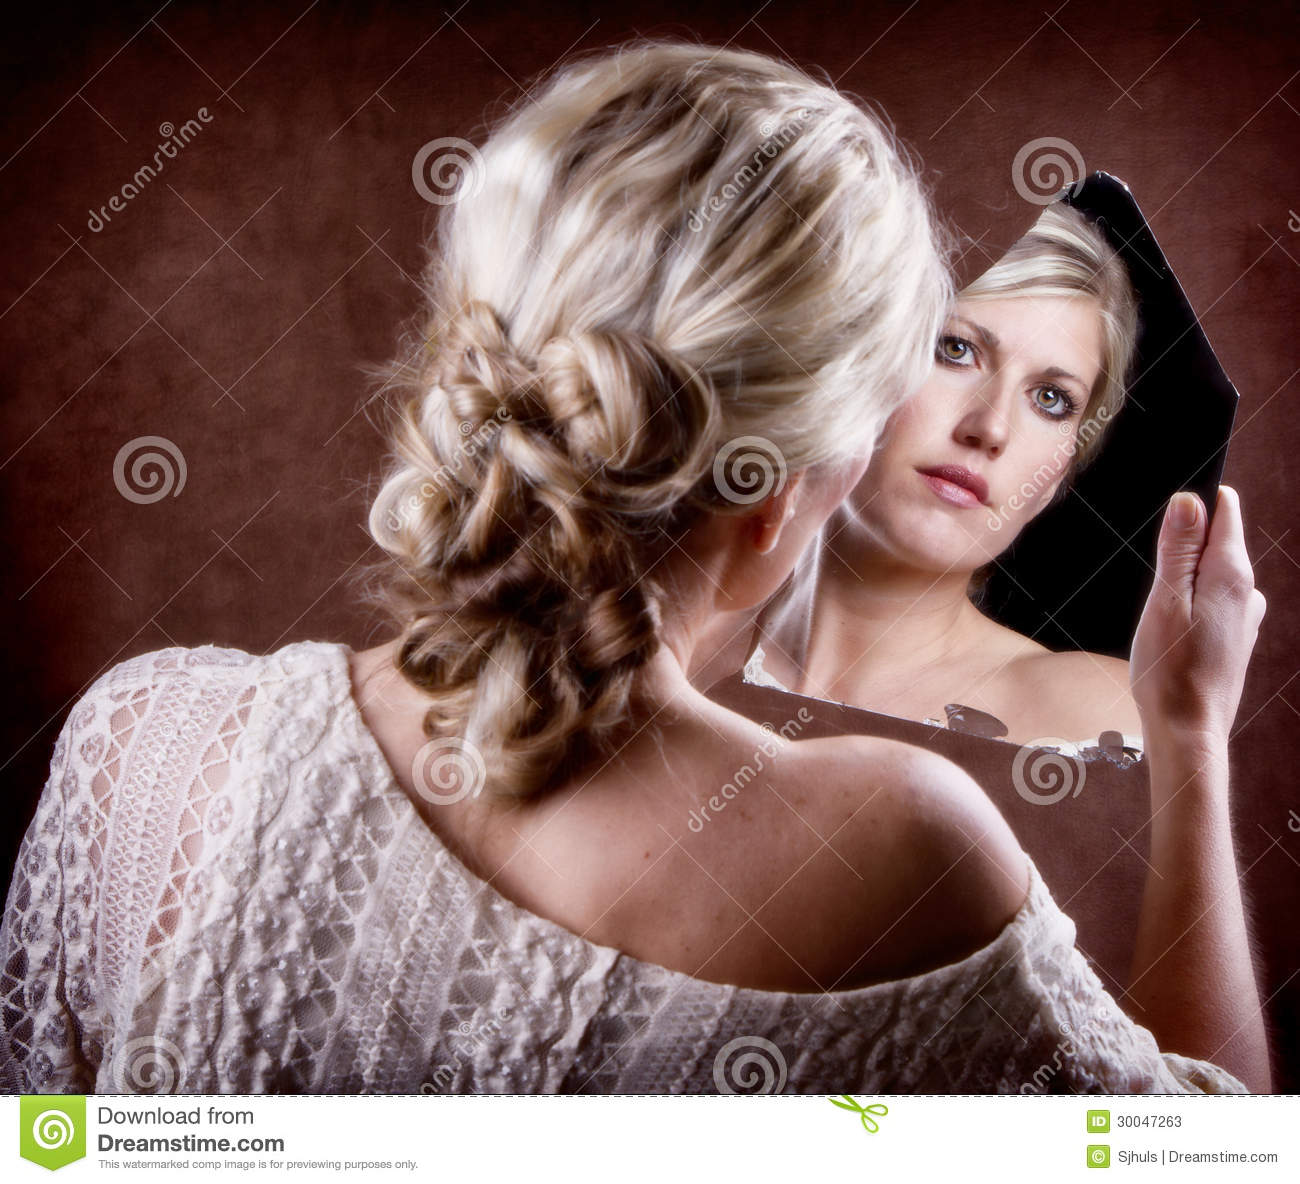 Woman Looking Into A Broken Mirror Stock Photos - Image: 30047263